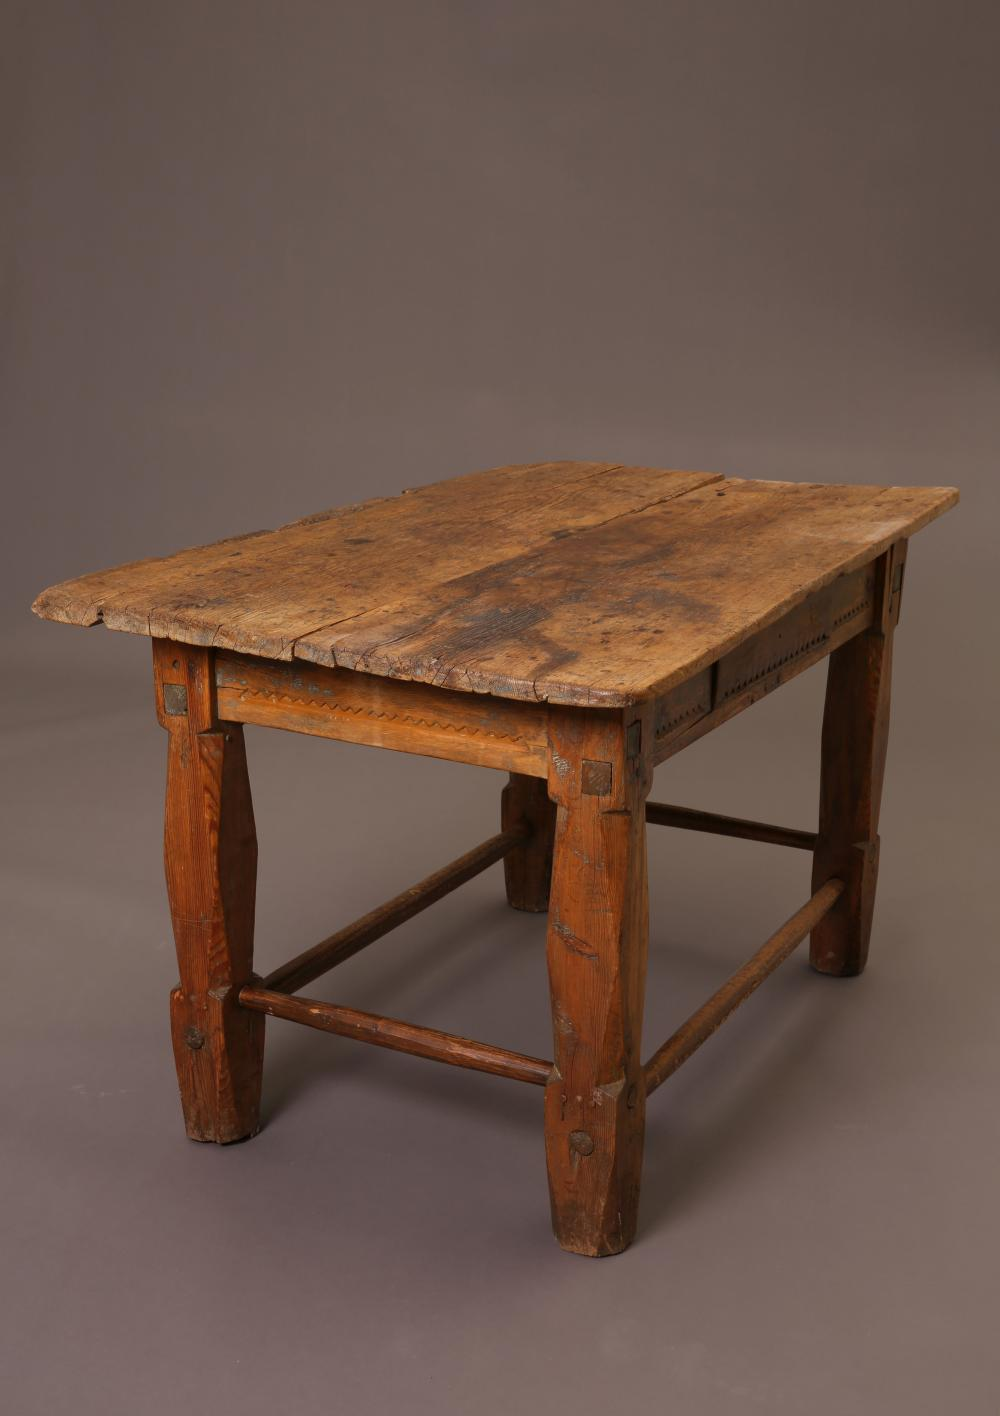 Wooden Table with Carved Sides, 19th Century